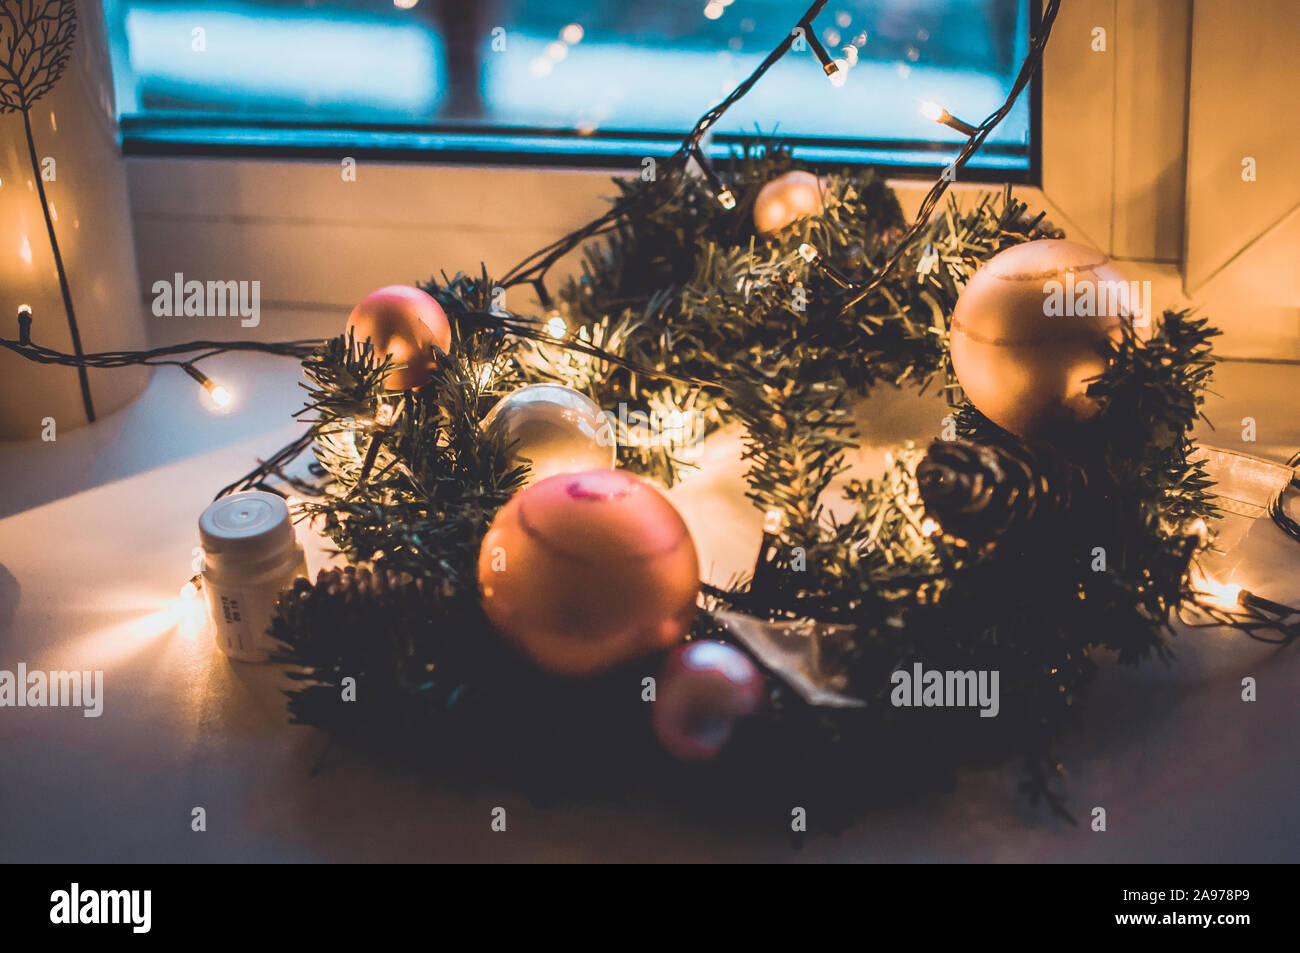 Decorated Wreath Of Christmas Tree Close Up Red Balls And Garland Backlit With Lanterns New Year S Baubles Macro Photo With Bokeh Winter Holiday Stock Photo Alamy